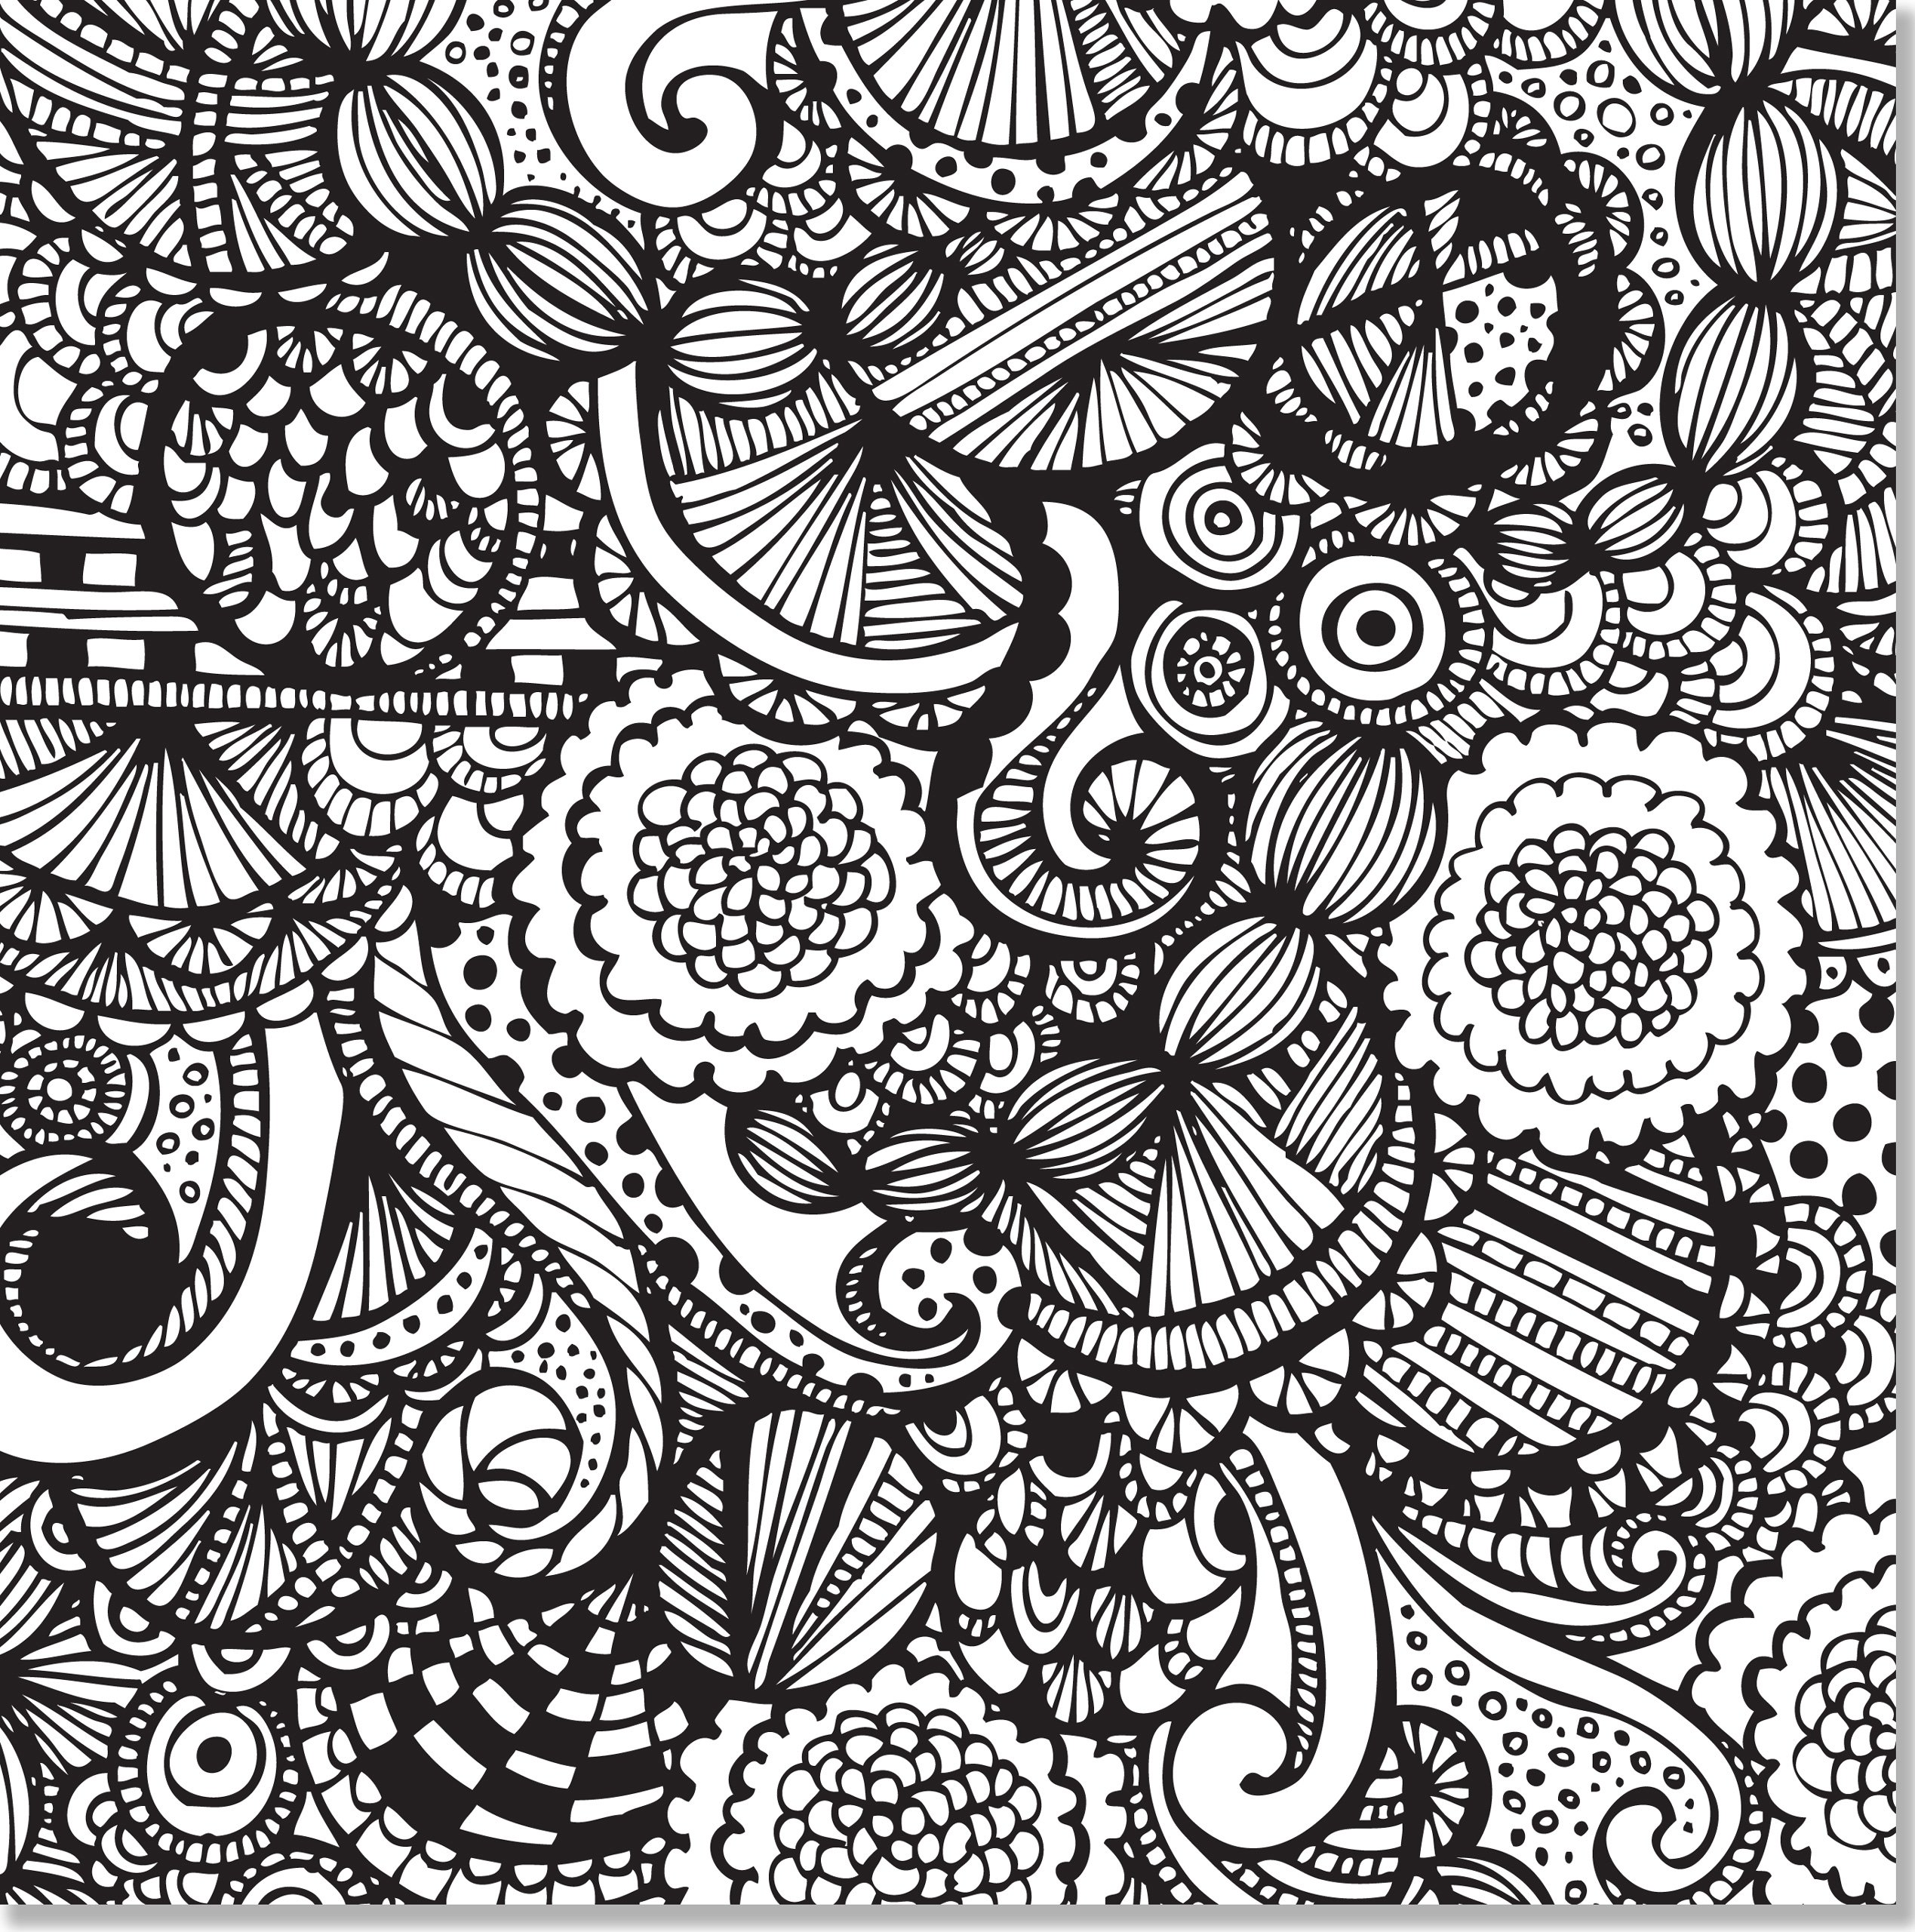 Stress relief coloring pages - Amazon Com Joyful Designs Adult Coloring Book 31 Stress Relieving Designs Studio 9781441317568 Joy Ting Books